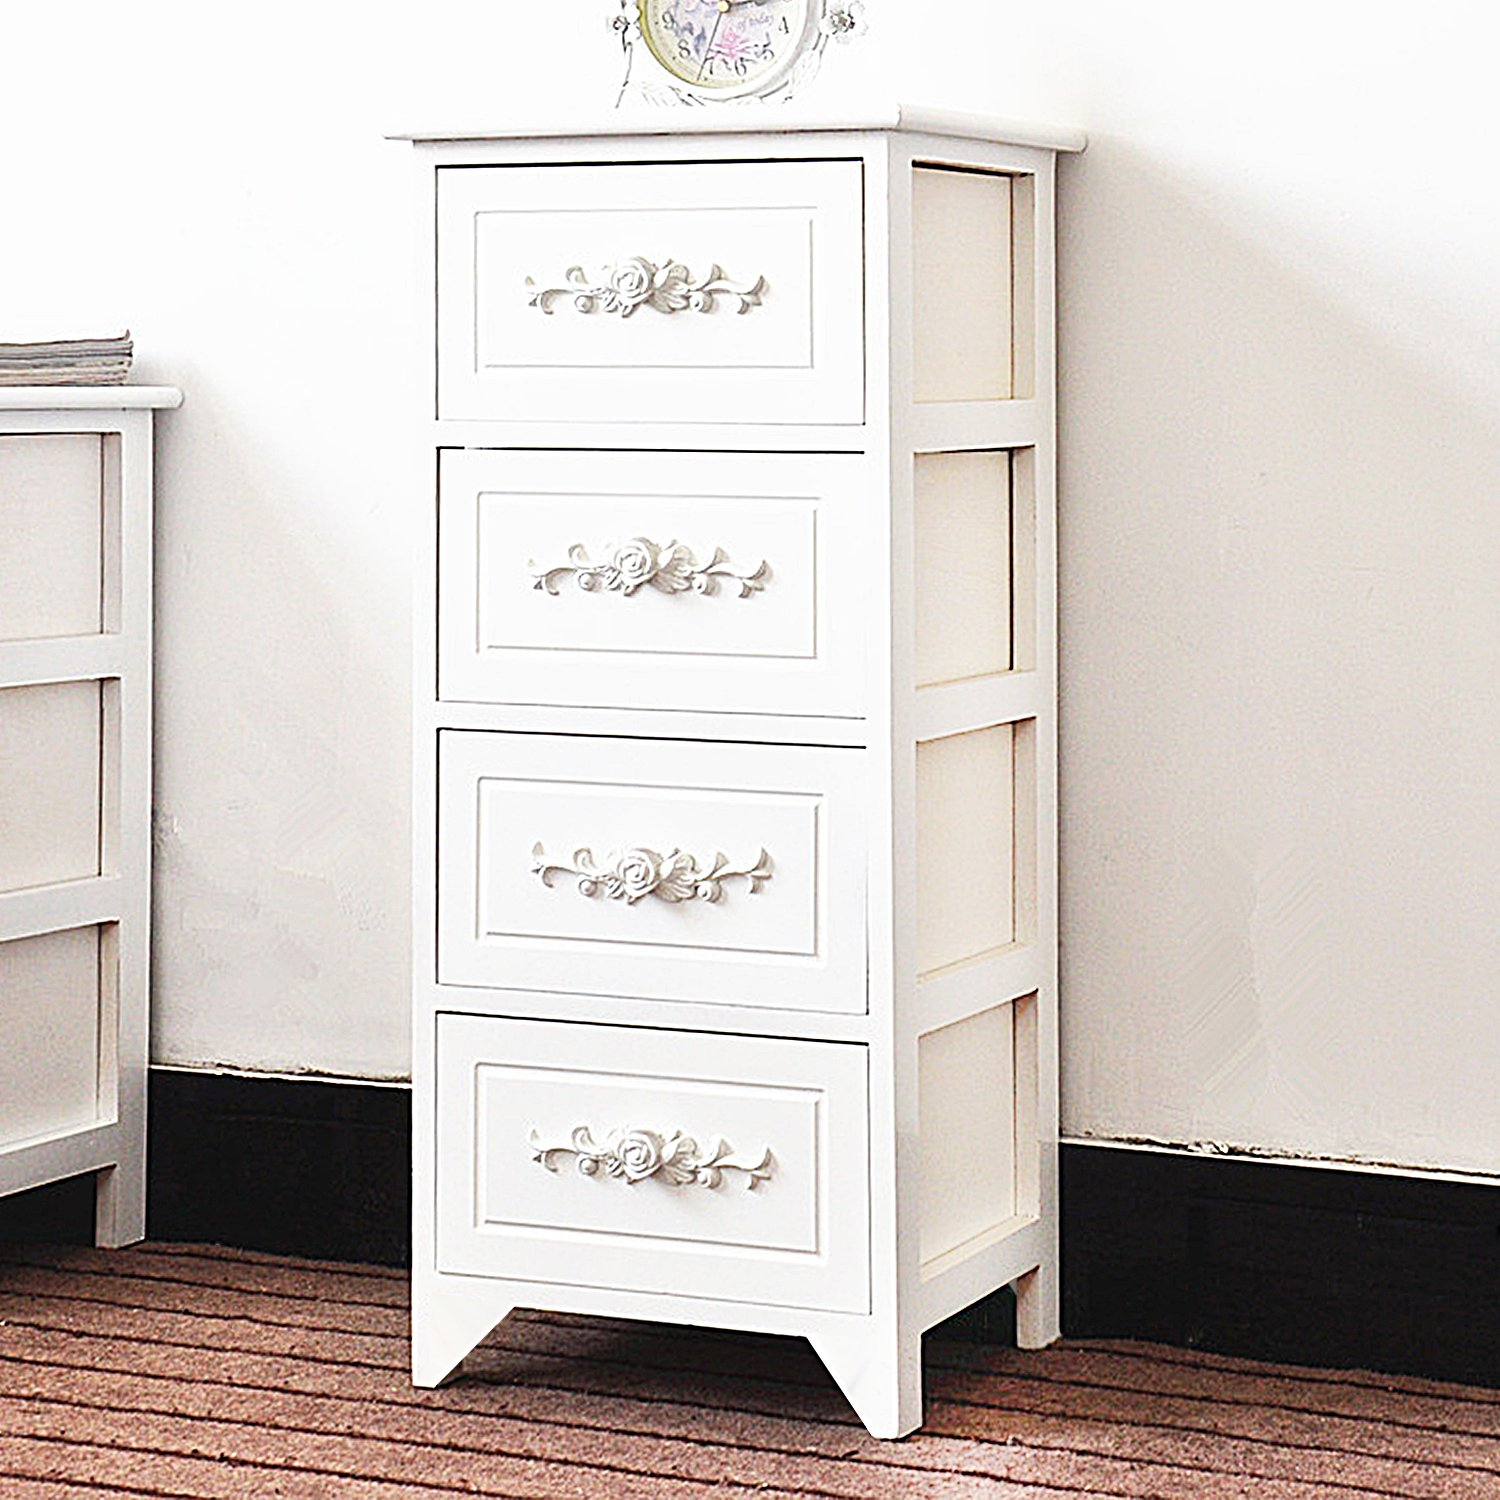 DL furniture - Fully Assembled Tone Finish Night Stand 4 Drawer Storage Shelf Organizer | White